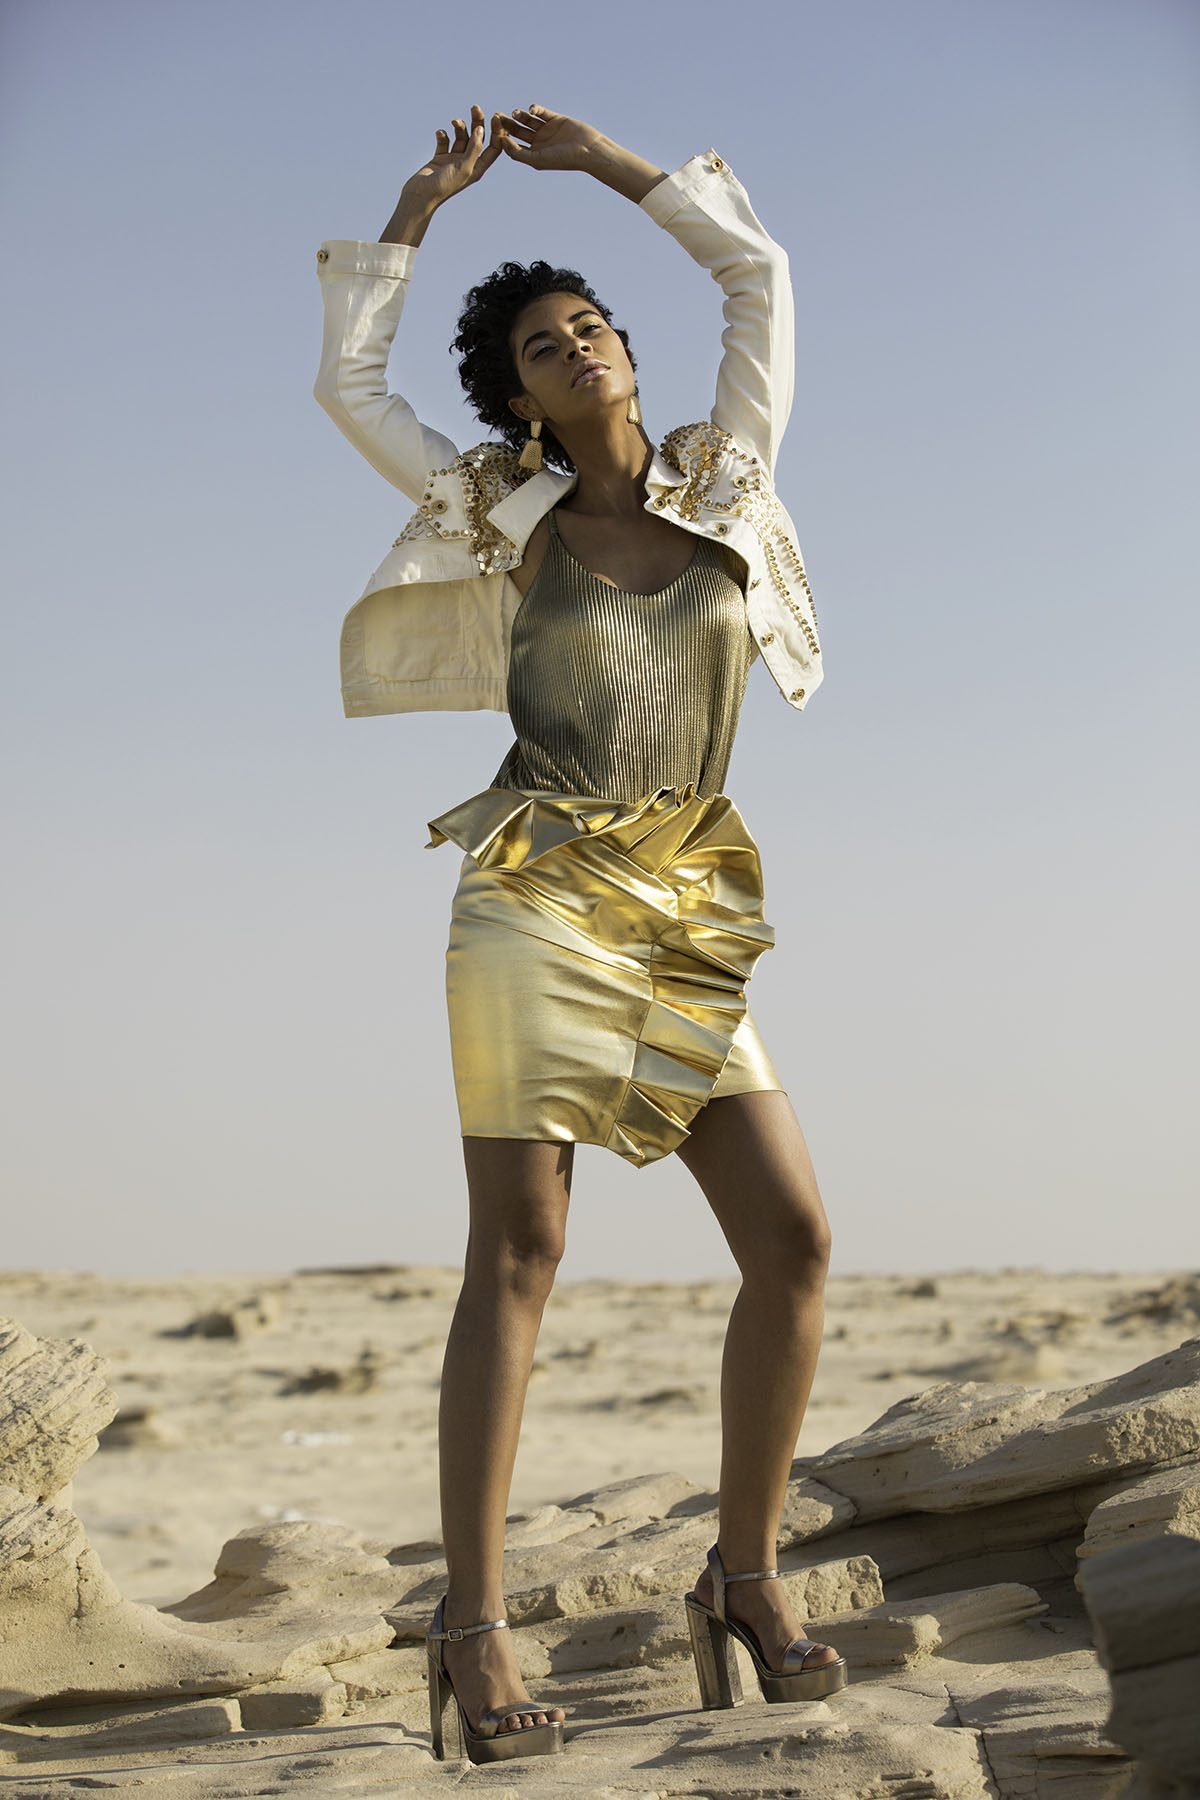 Fashion photoshoot in Abu Dhabi by Loesje Kessels Fashion Photographer Dubai